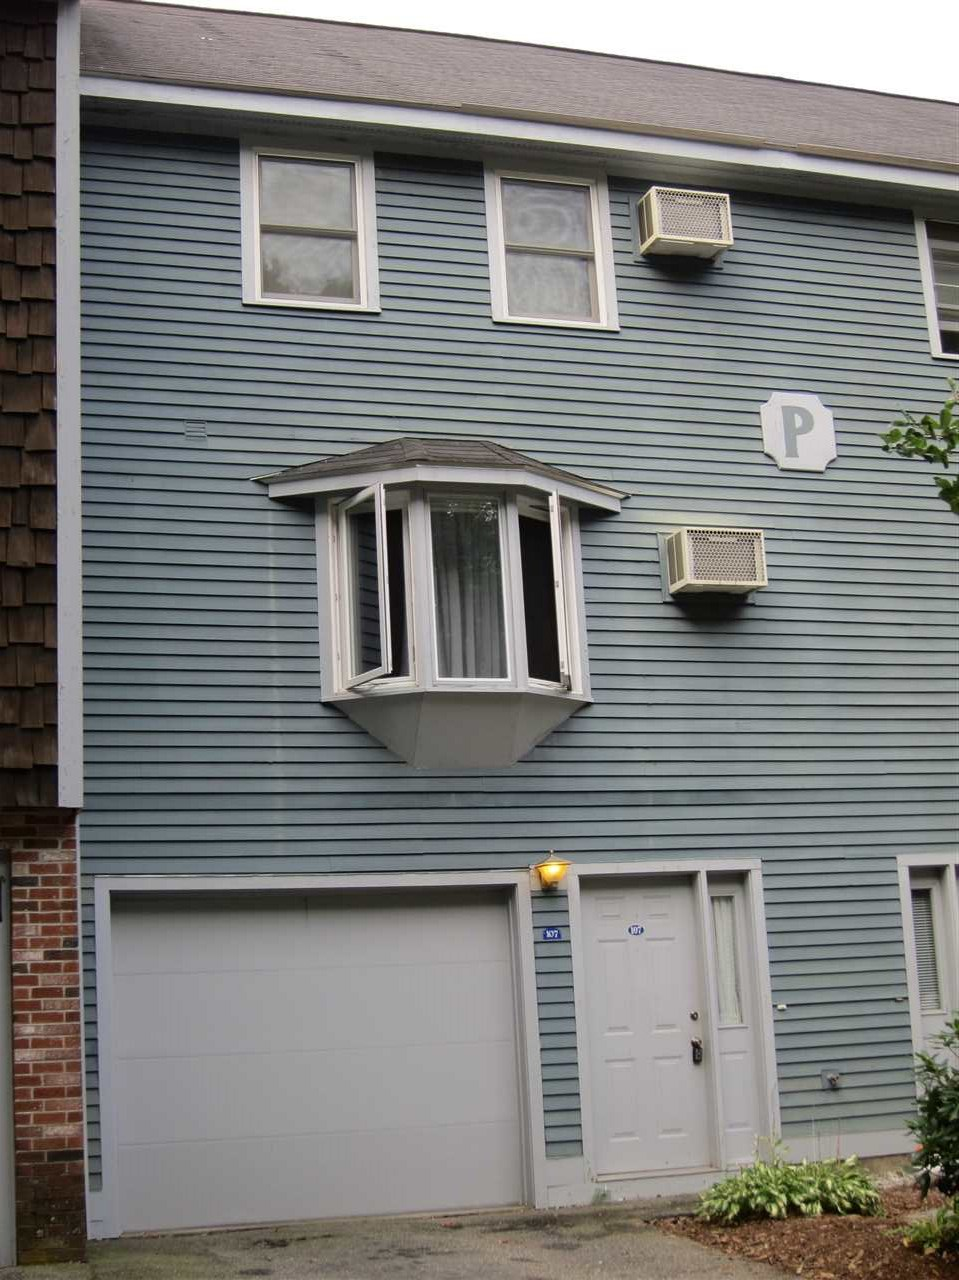 image of Manchester NH Condo | sq.ft. 1464